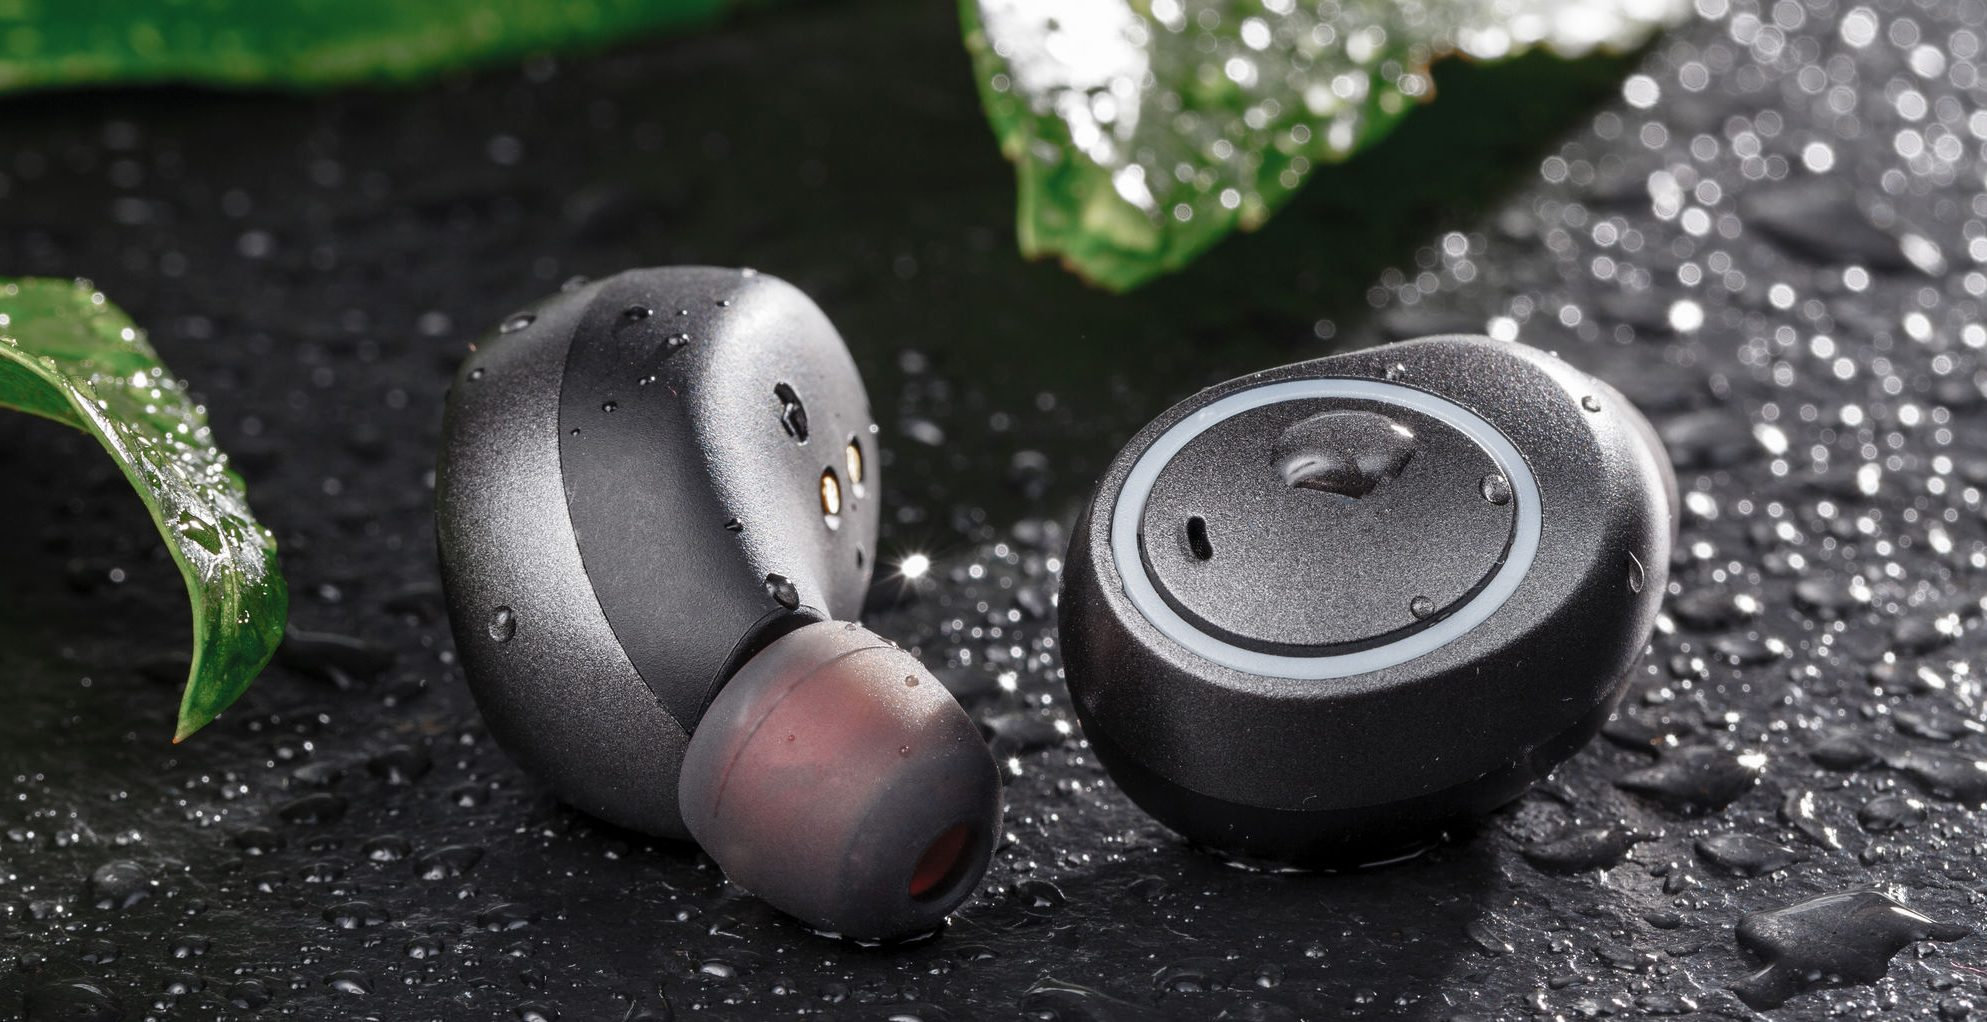 Sport waterproof cordless earphones